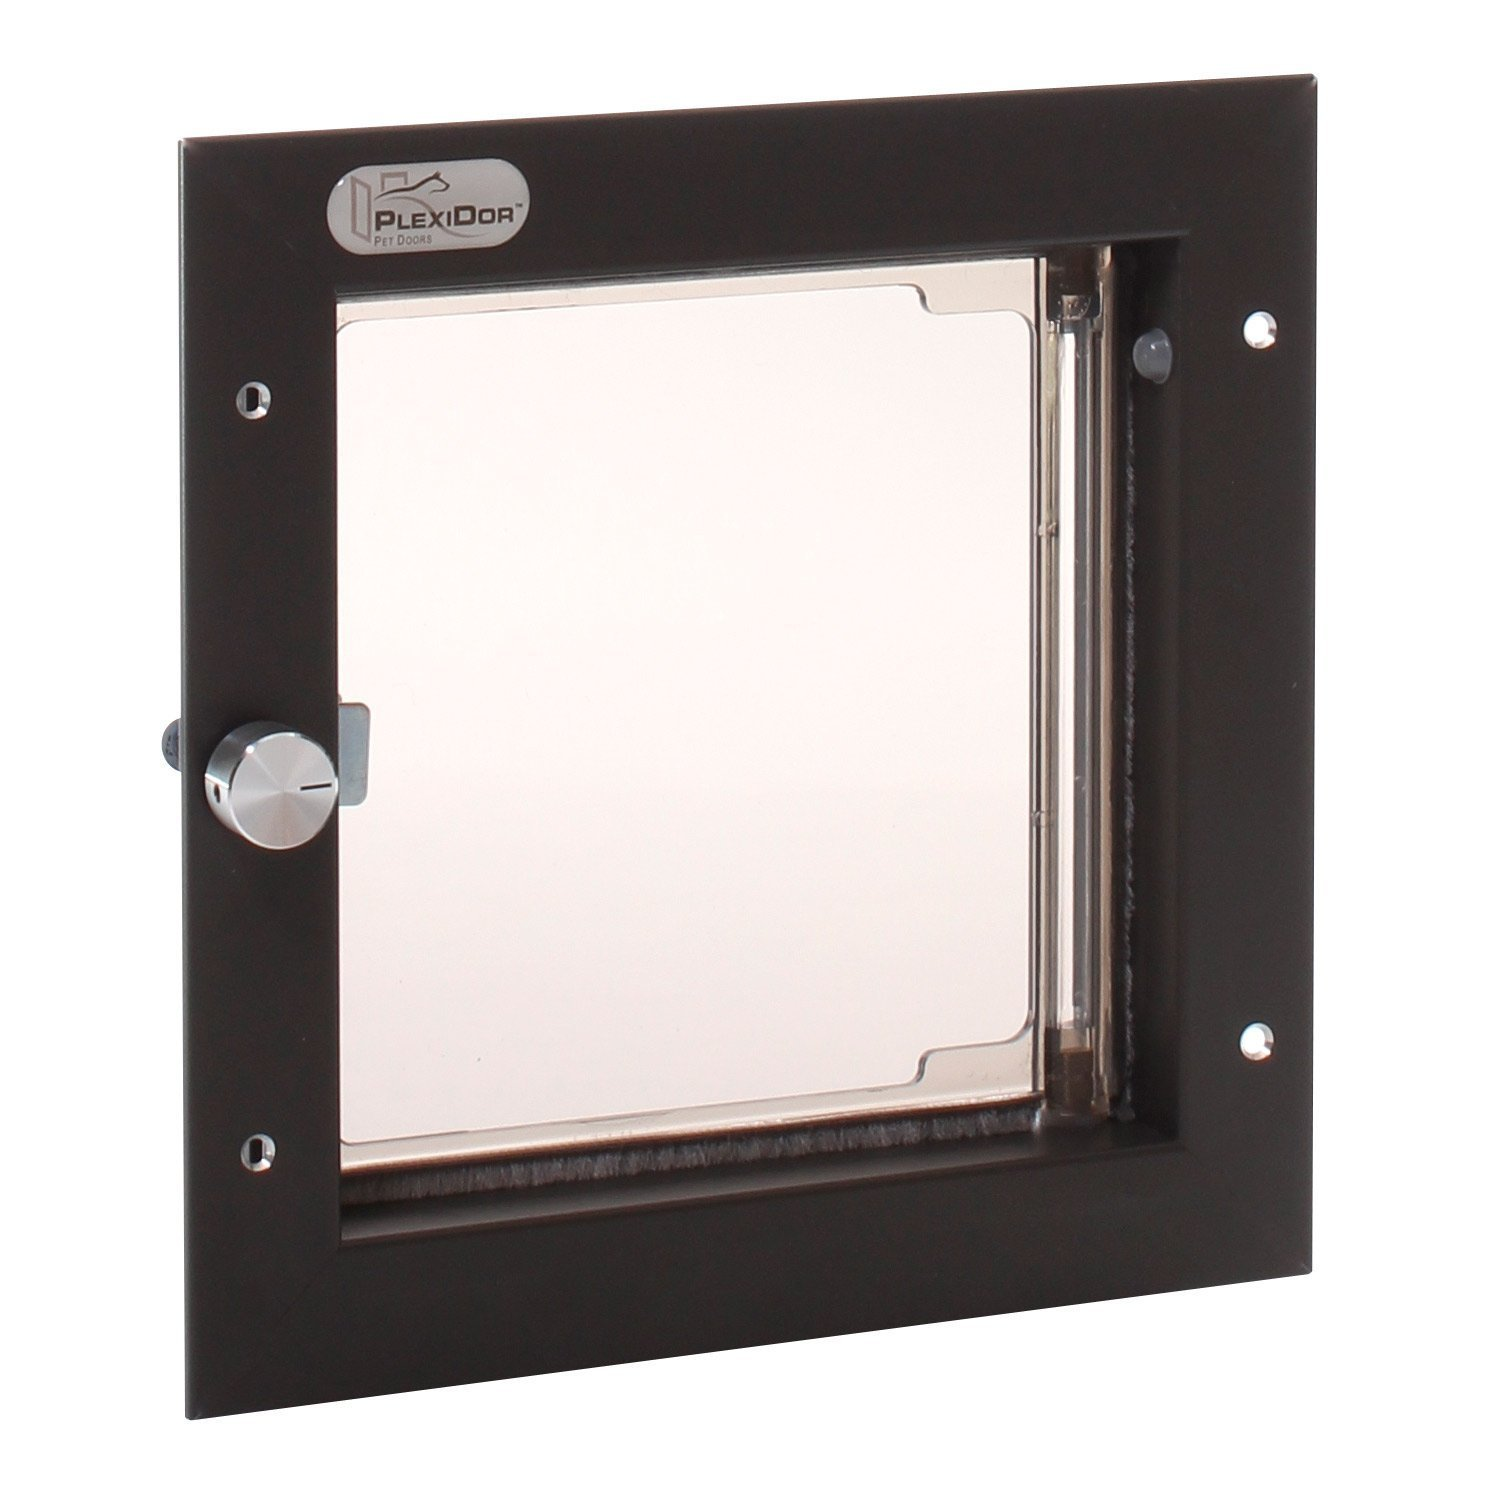 Wall Mounted PlexiDor Performance Pet Door for Cats or Small Sized Dogs in Bronze